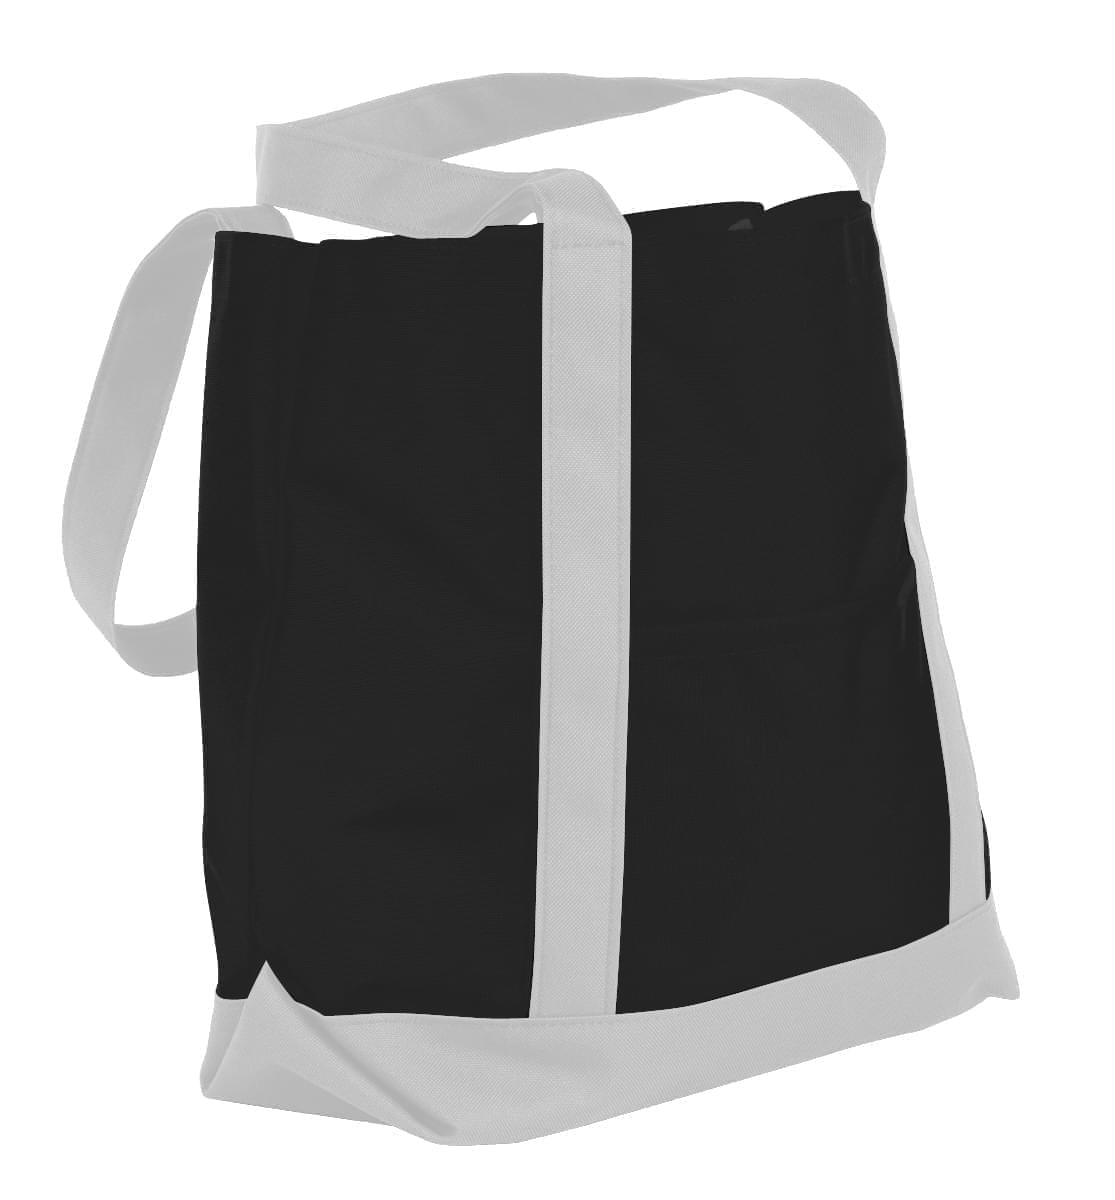 USA Made Nylon Poly Boat Tote Bags, Black-White, XAACL1UAOP